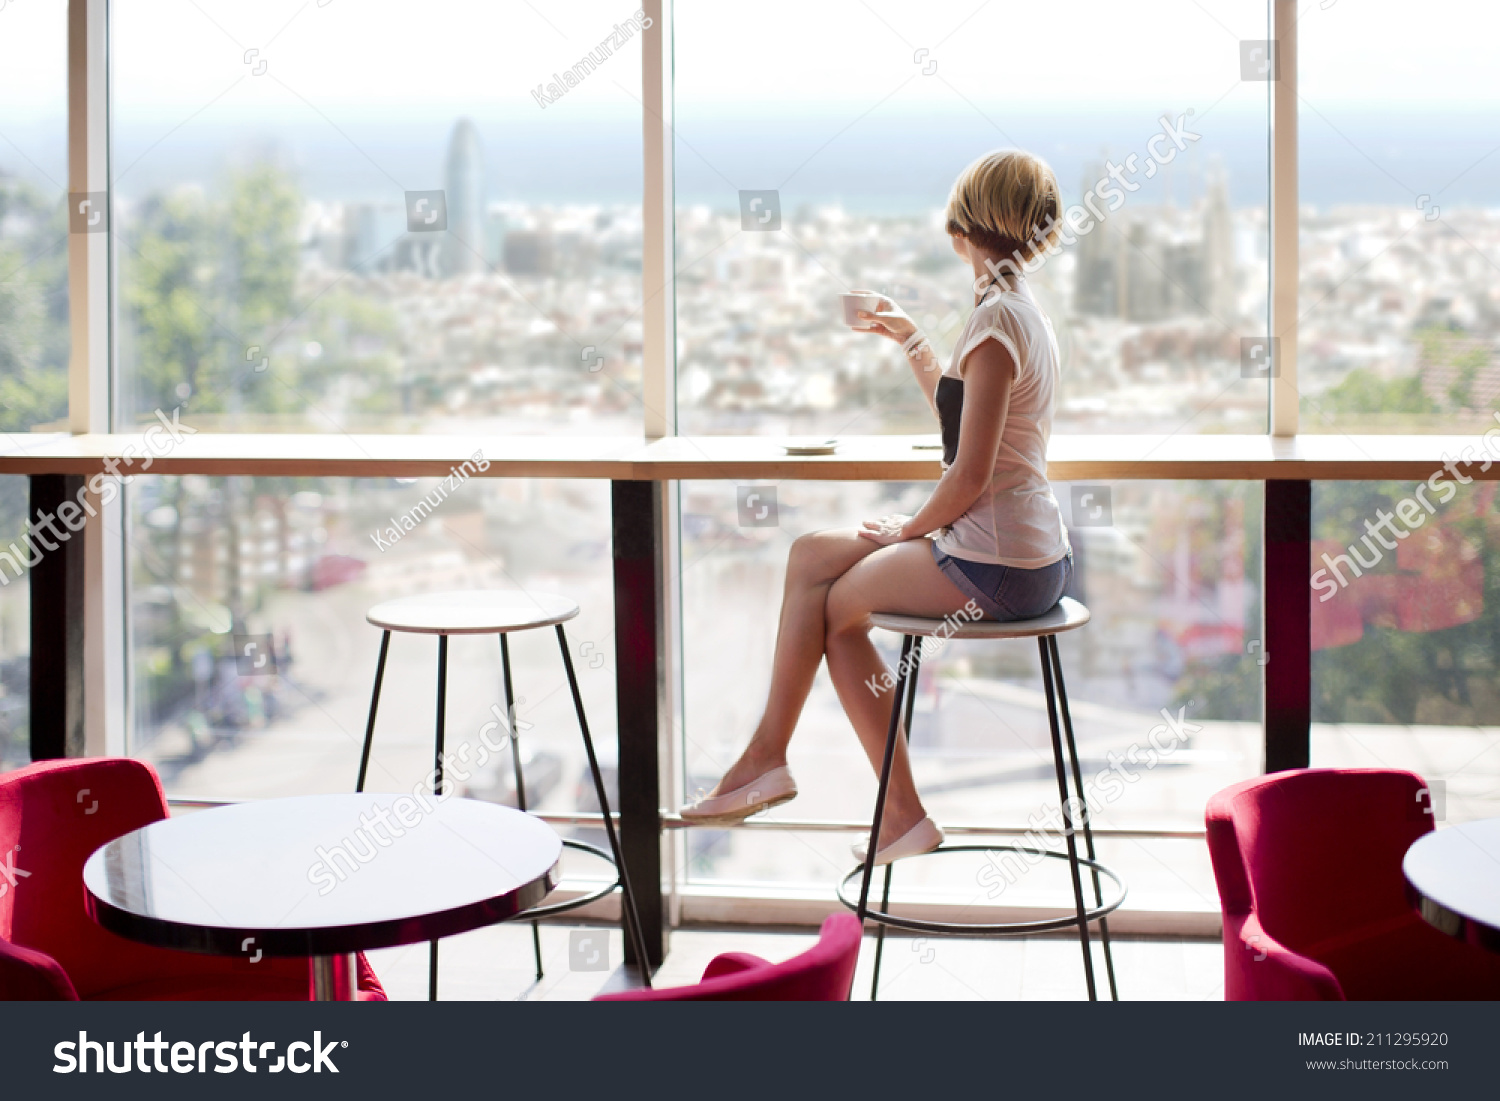 Concurrence Girl on bar stool well told